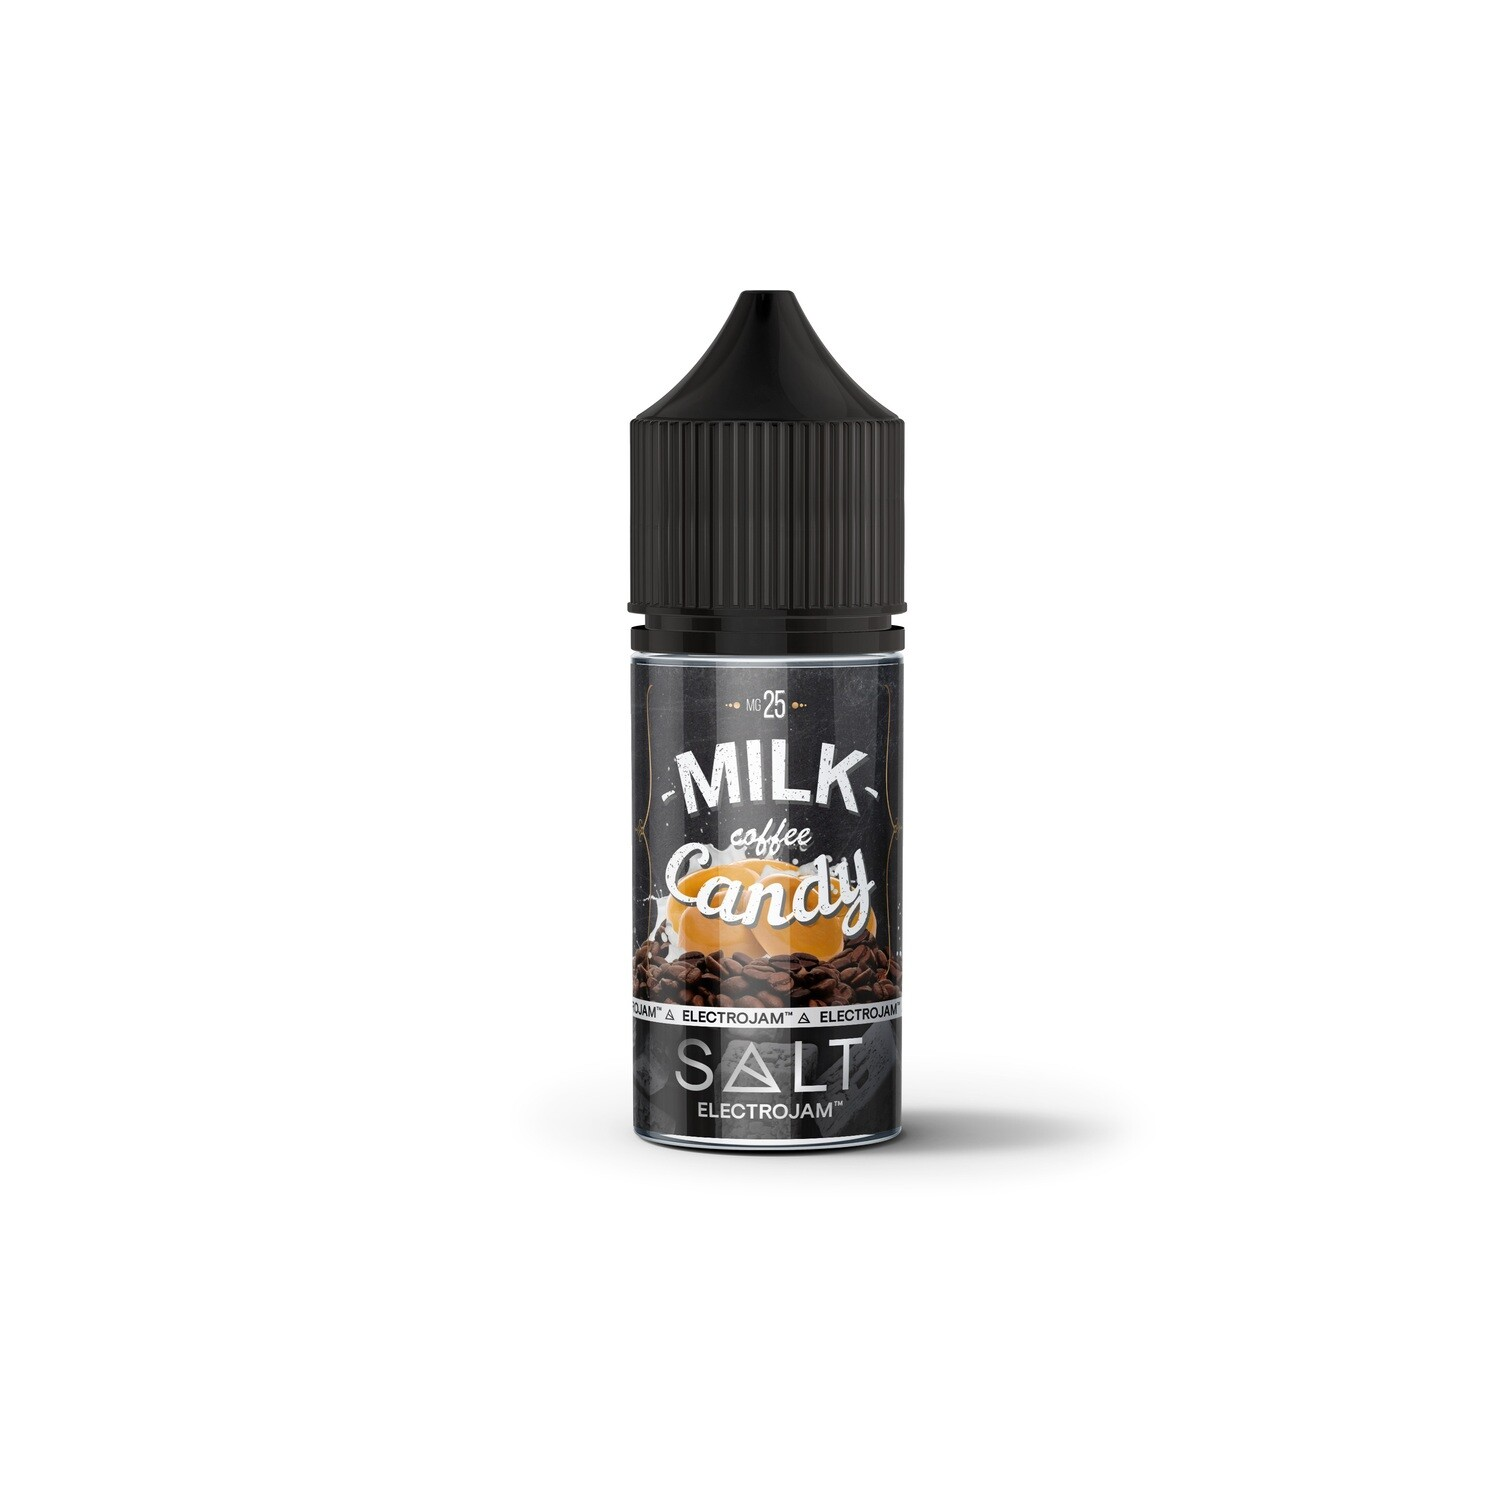 ELECTROJAM: MILK COFFE CANDY SALT 30ML 25MG